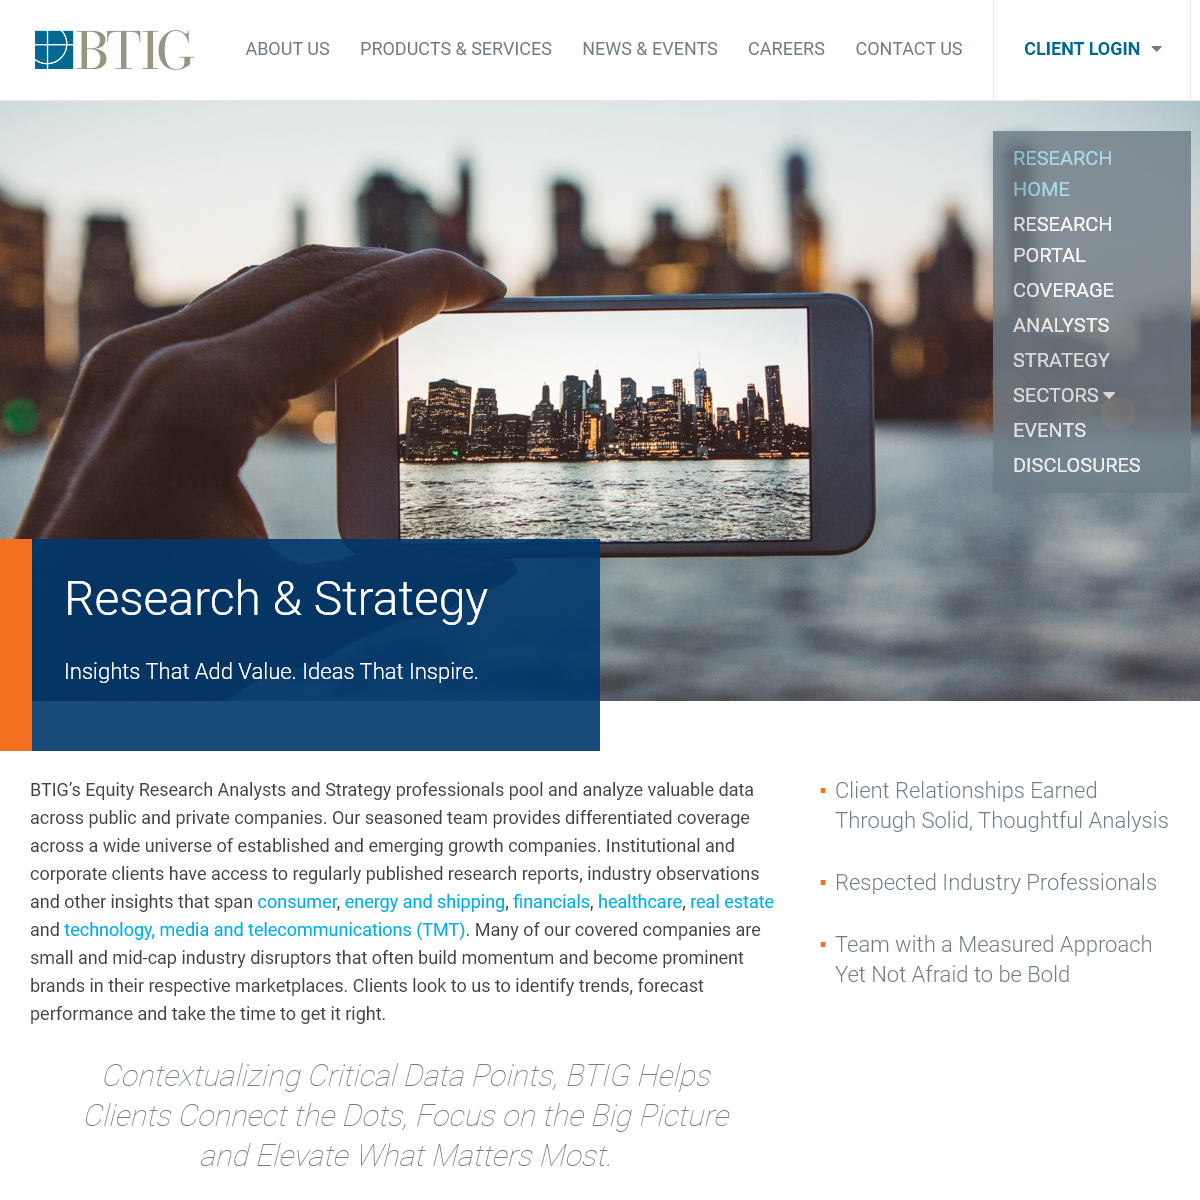 BTIG Research & Strategy